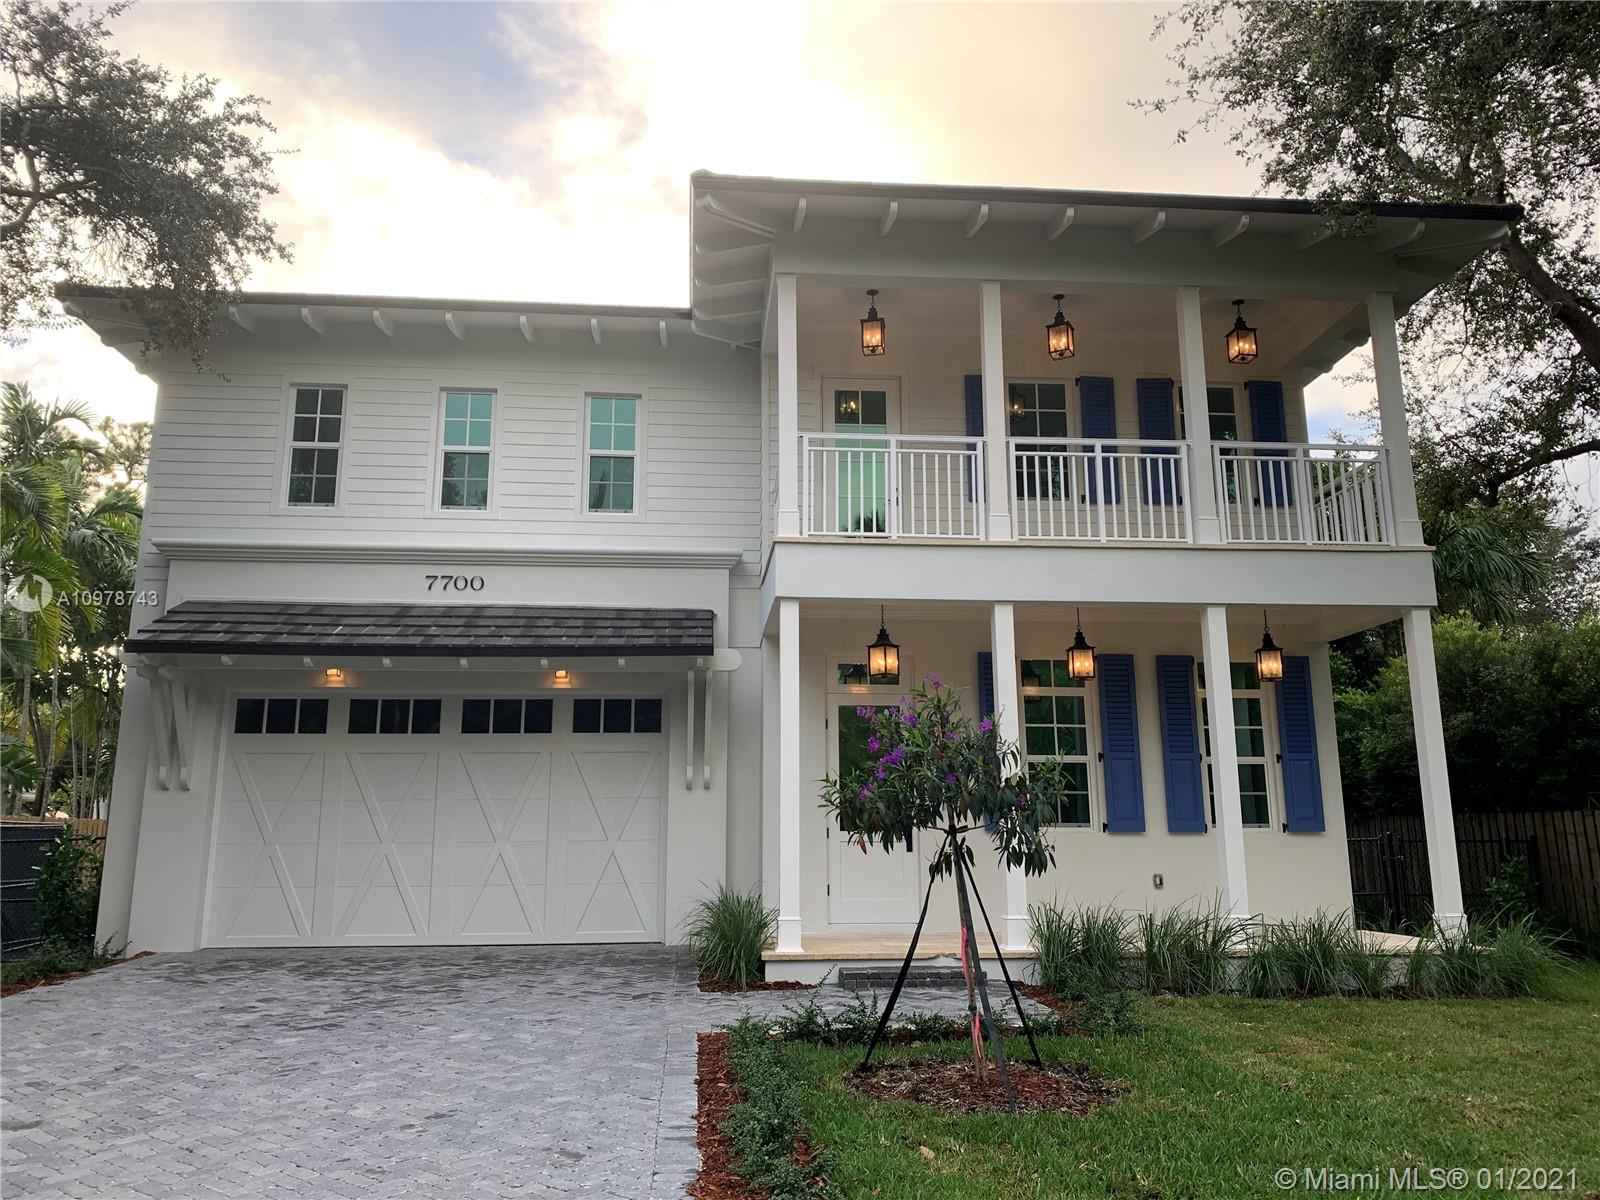 This stunning Coastal Plantation Style home truly stands apart from all the homes in the City of South Miami. This home is situated on 10,000sf lot. Completed in December 2020, this home boasts 5 bedrooms, 5 1/2 bathrooms and 2 car garage. Beautiful kitchen featuring Thermadore Pro Series Appliances. Large Family room that opens to a covered terrace. The home features a full bar with a built in beverage center. All bathrooms are beautifully finished to compliment the home. Fully prewired for cameras and speakers throughout. Natural gas appliances and water heaters. Solar Panels for additional cost savings. Walking distance to downtown South Miami.